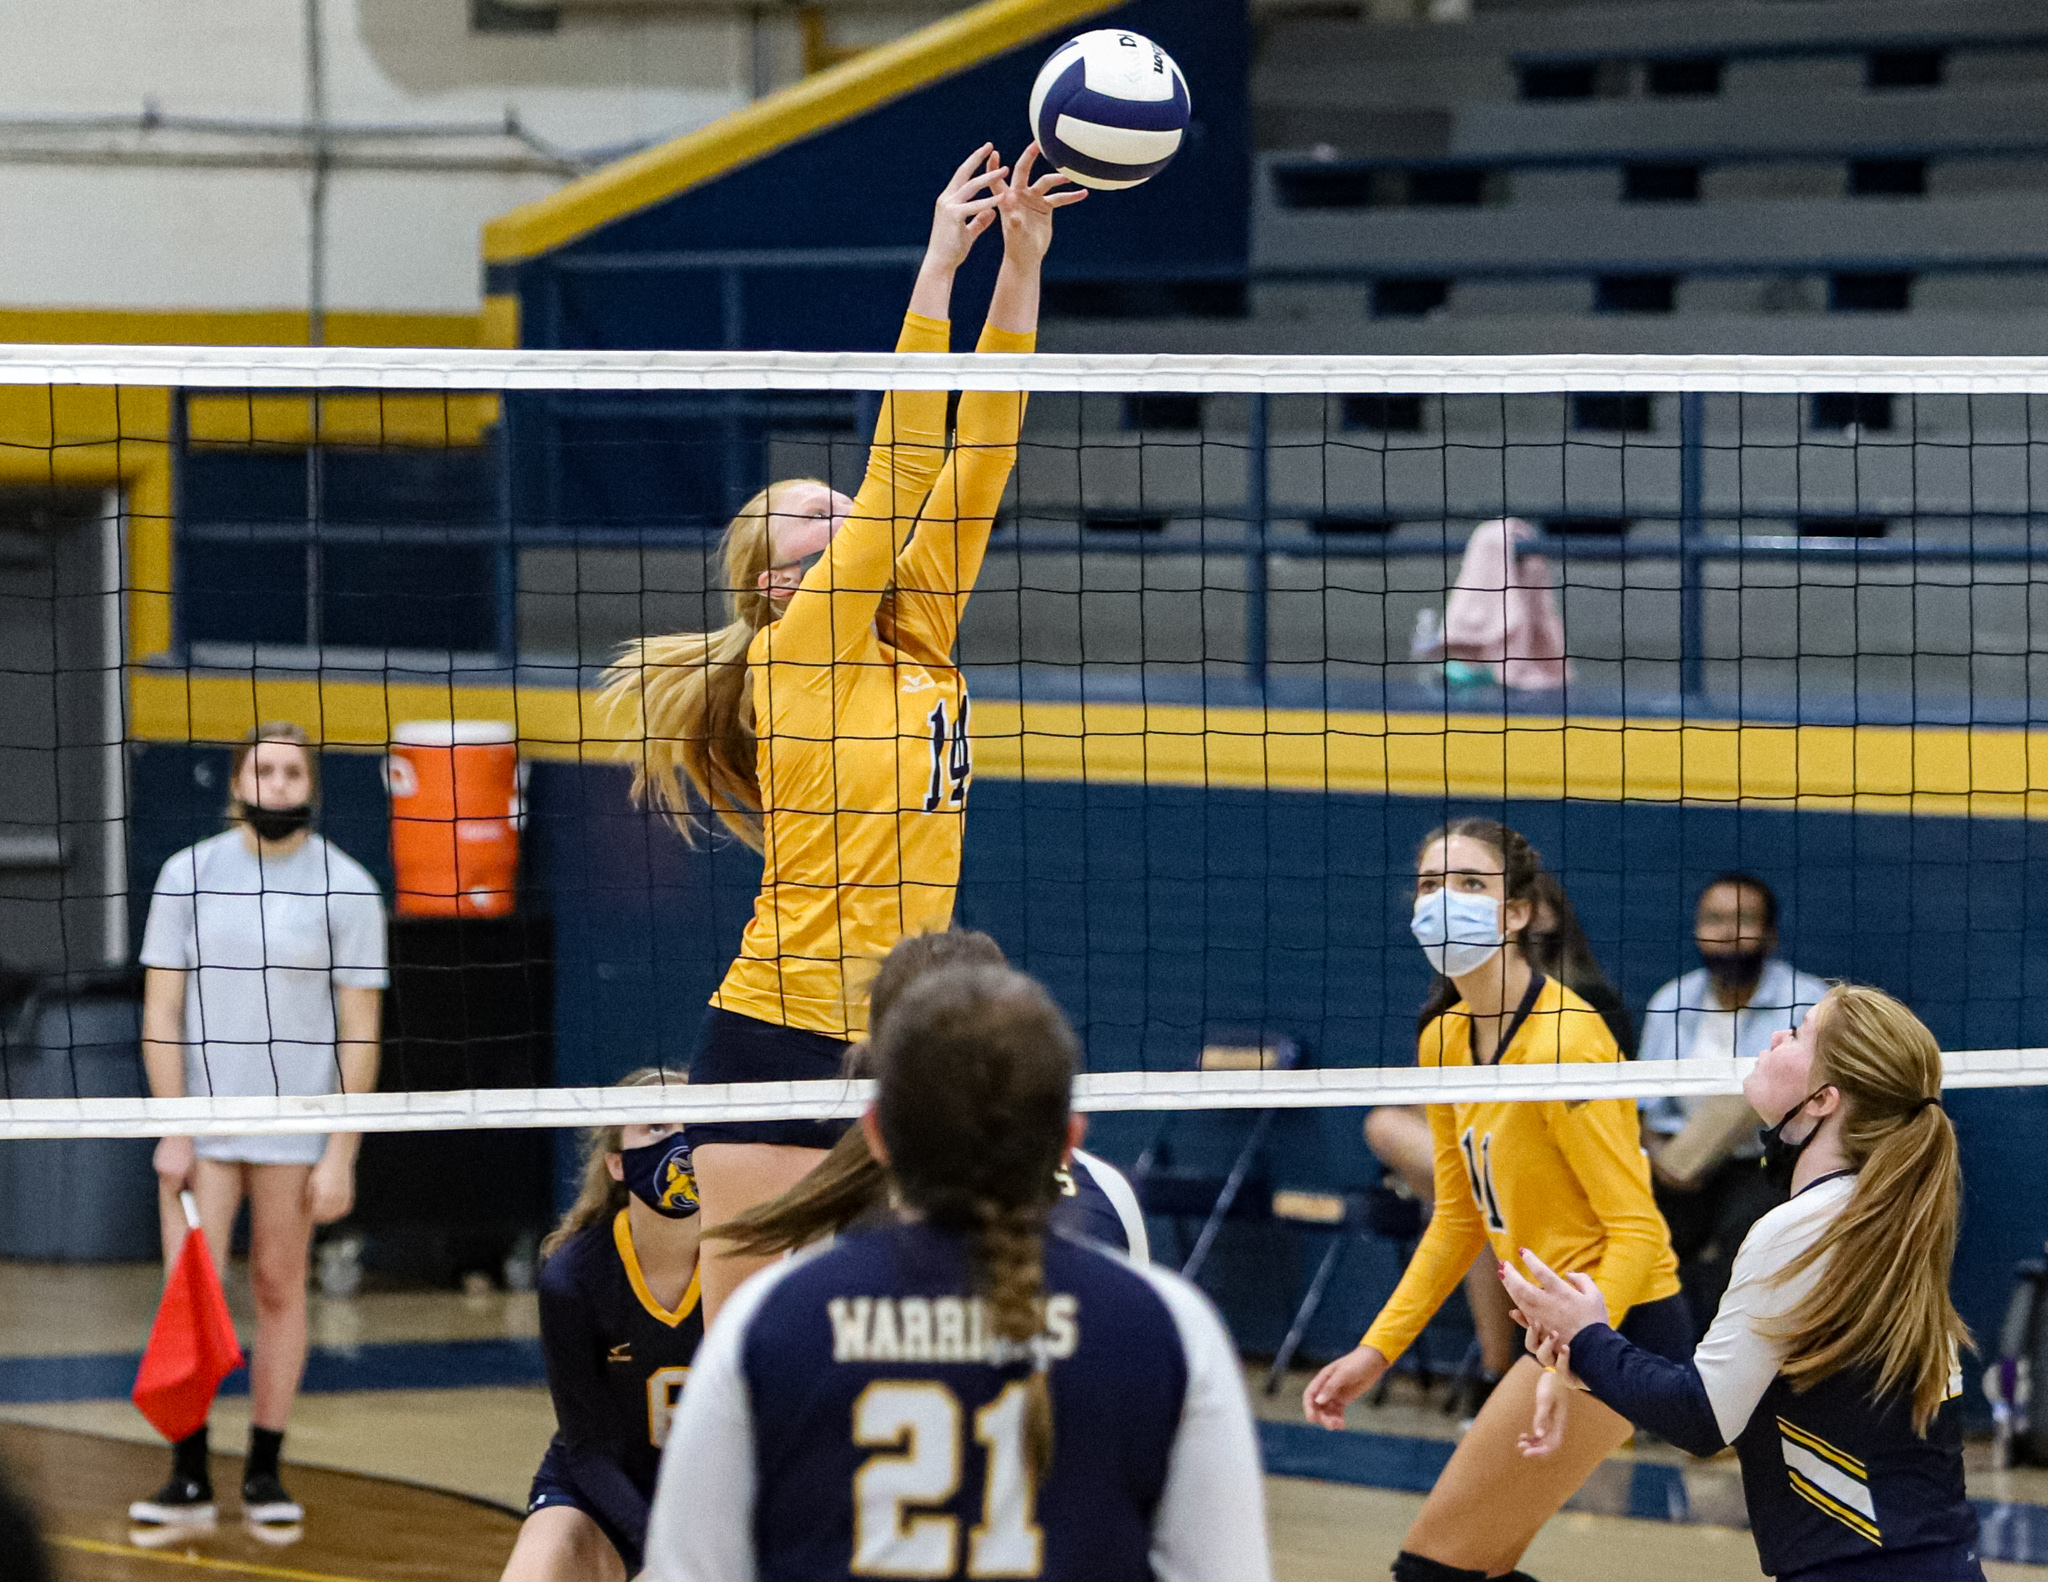 Volleyball: Goldsboro Sweeps Eastern Wayne In Conference Matchup (PHOTO GALLERY)